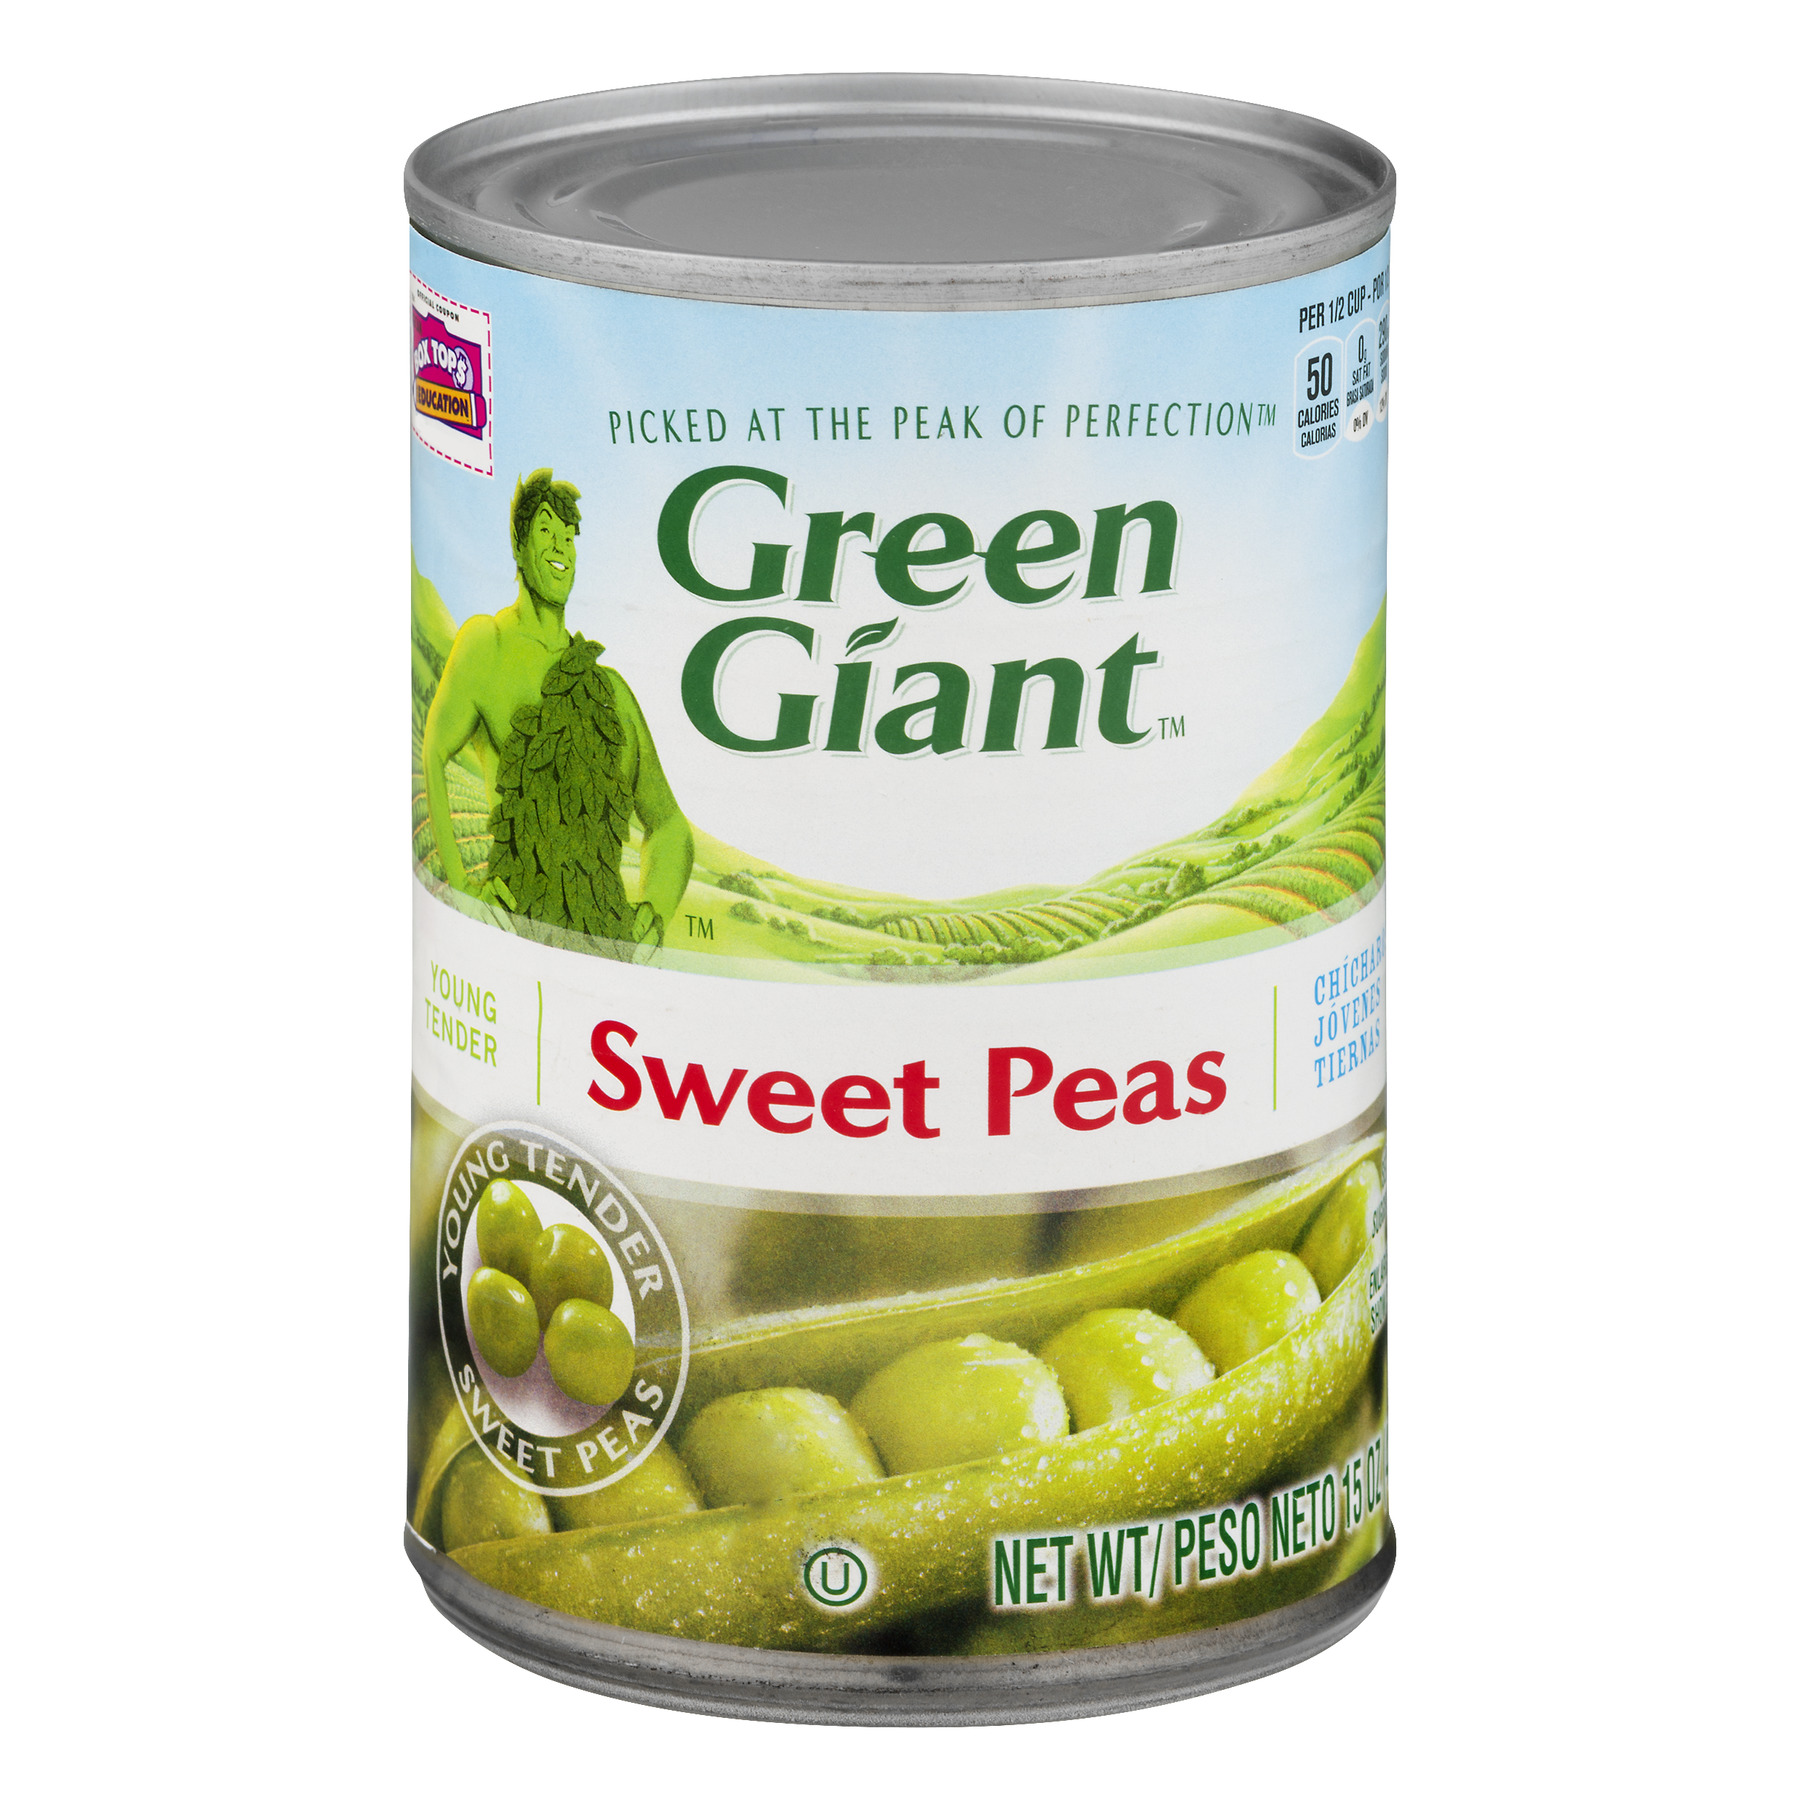 Green Giant Sweet Peas, 15.0 OZ